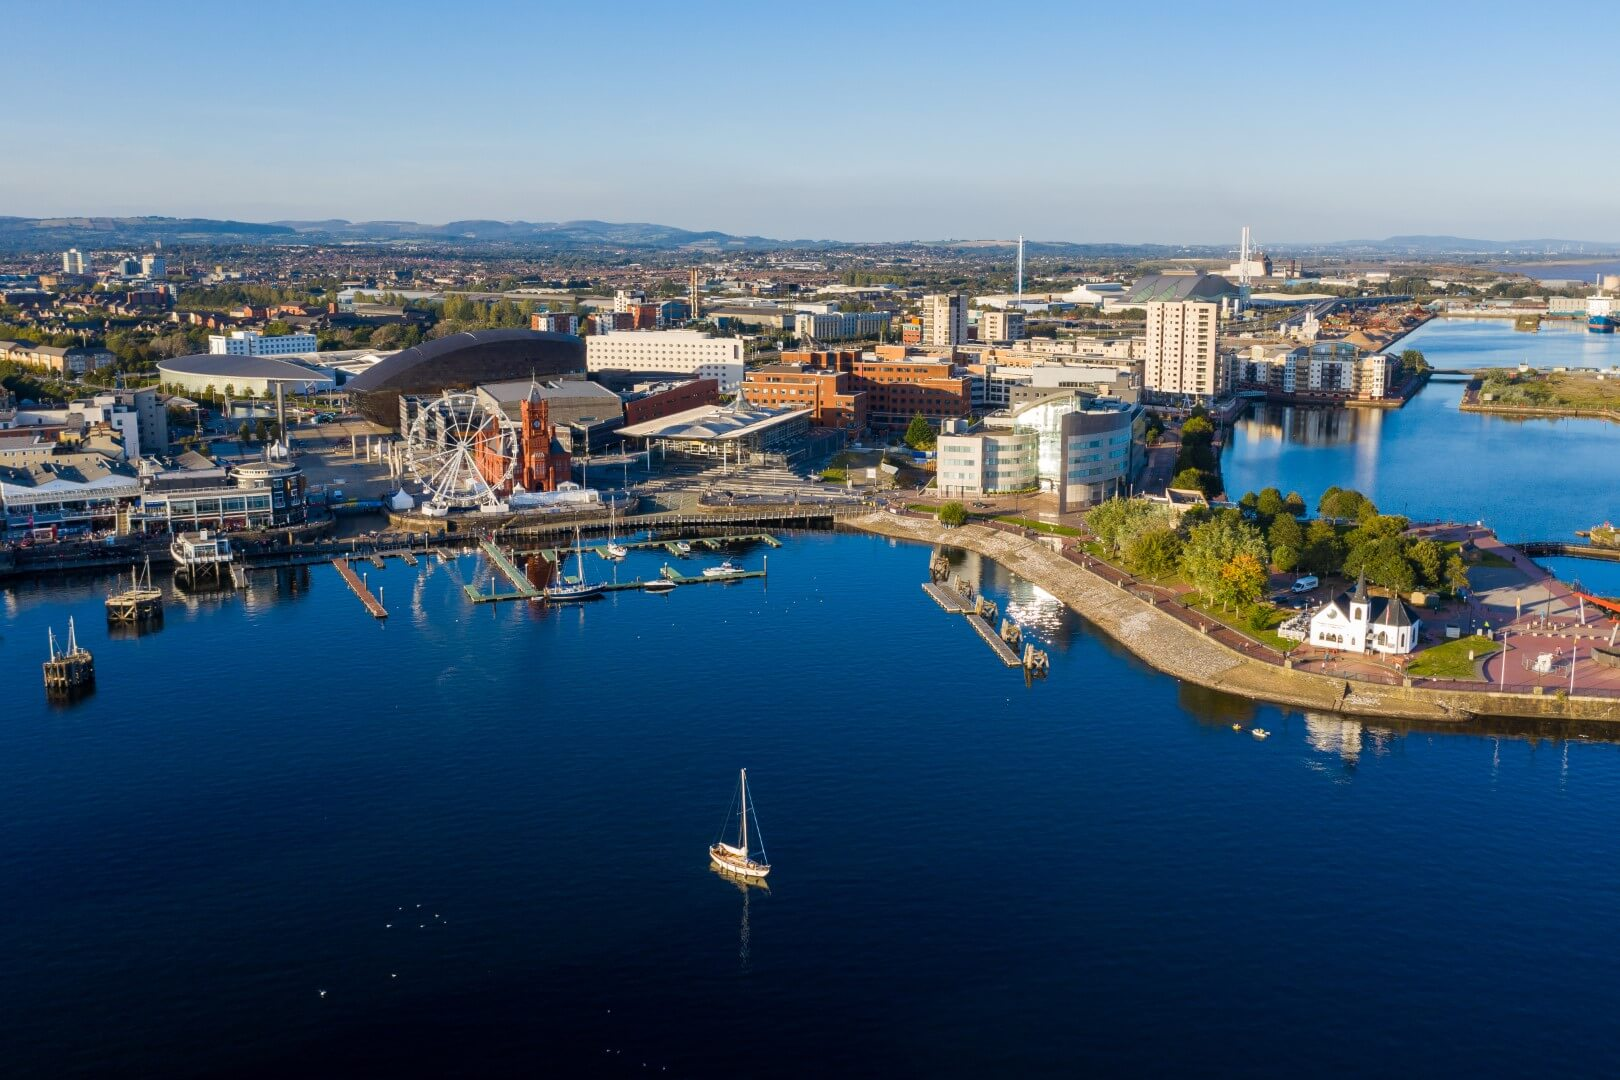 Cardiff waterfront D4Drivers driver medicals